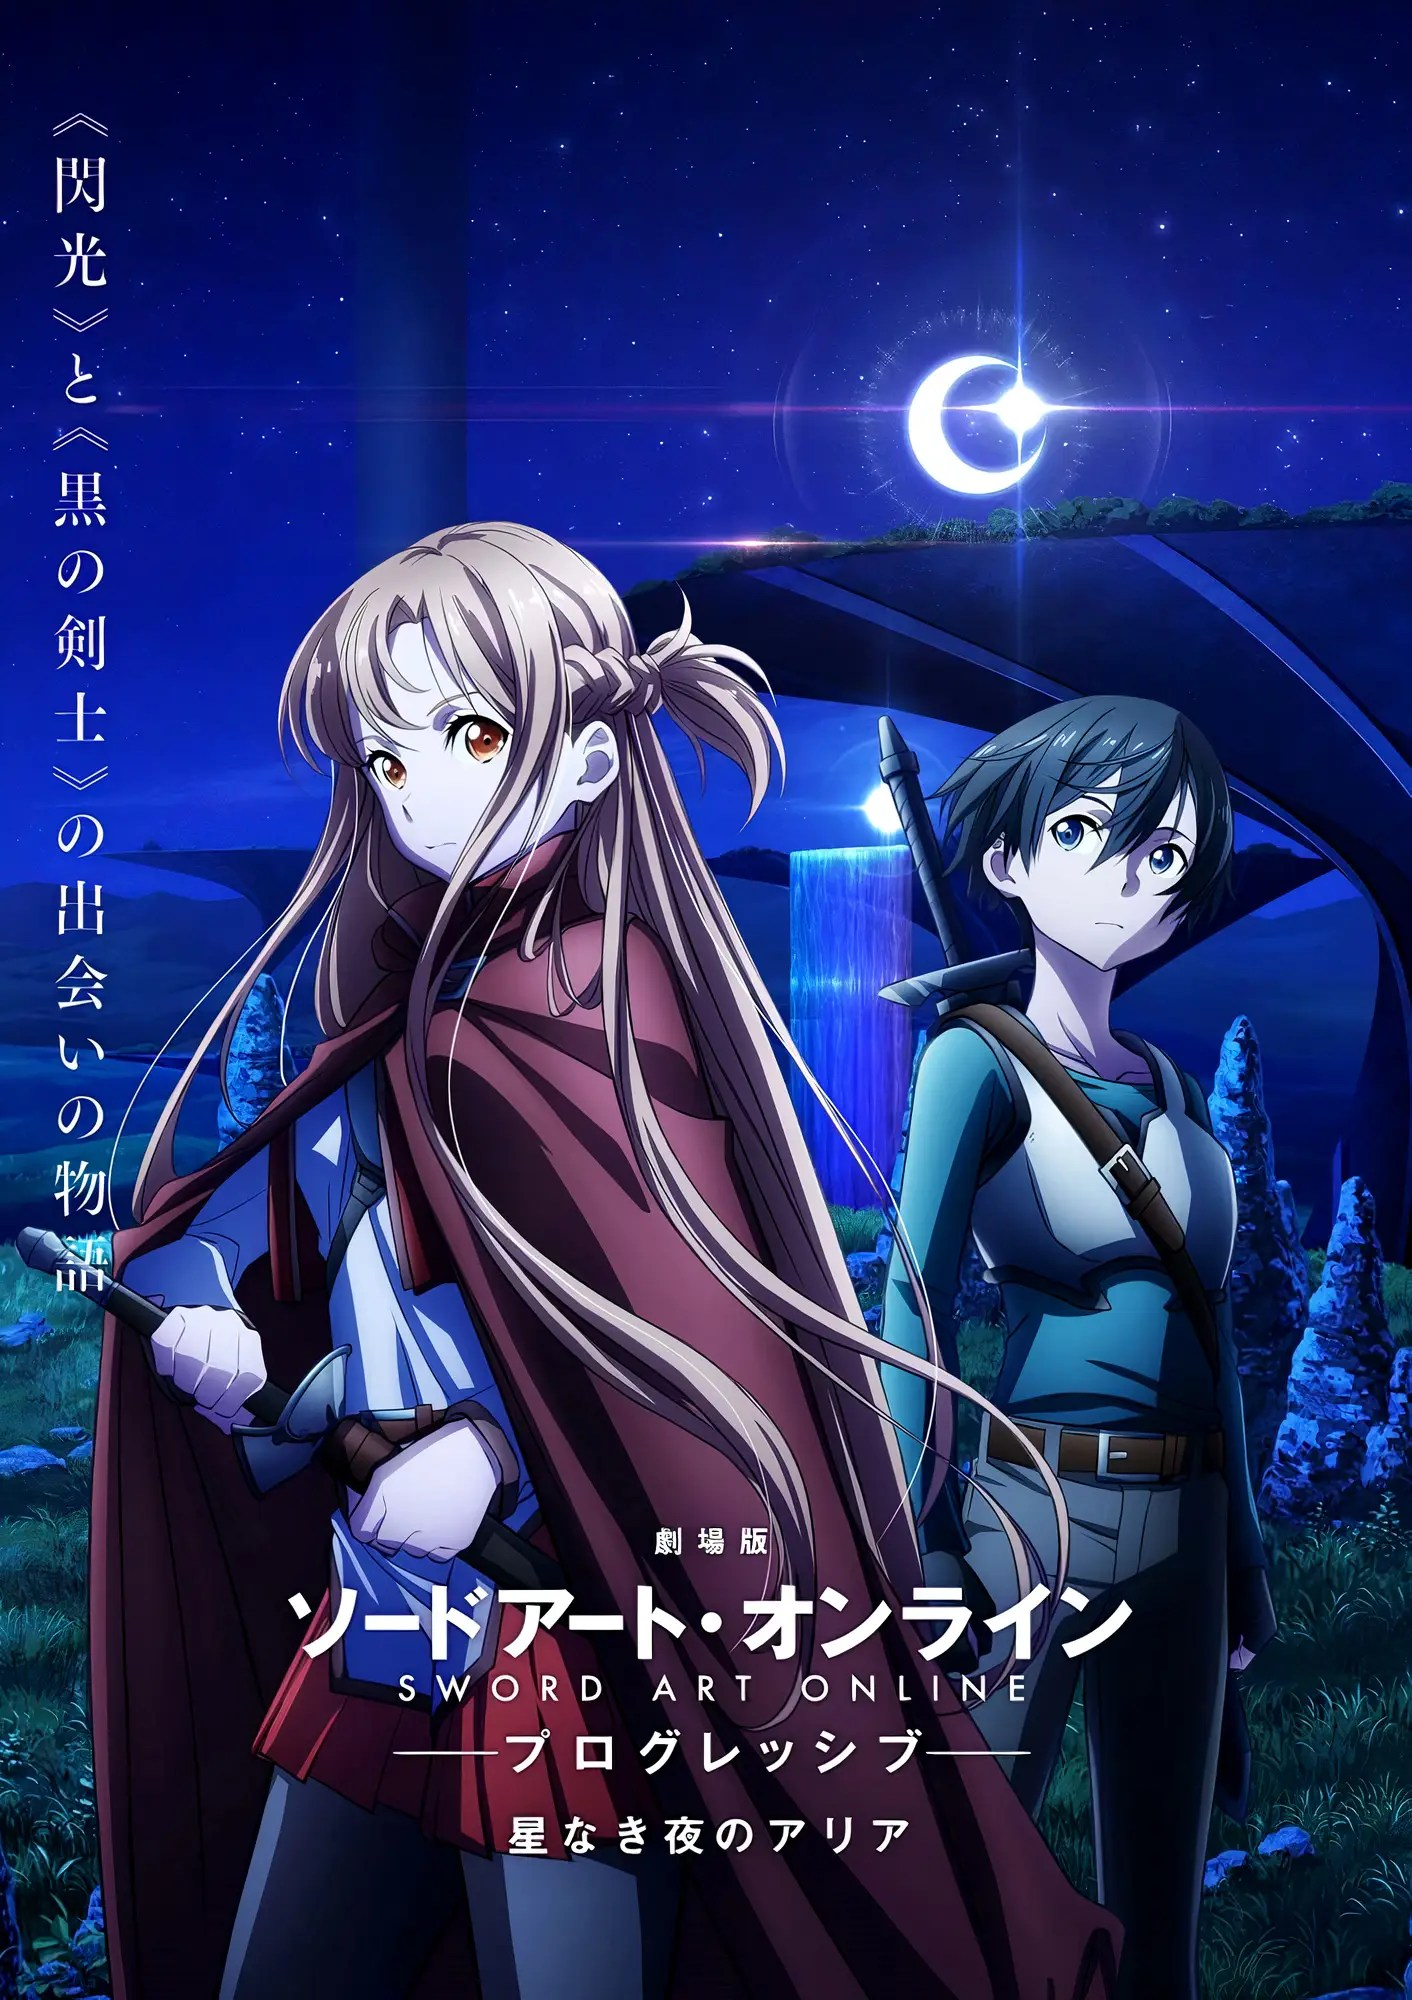 Annonce du film Sword Art Online Progressive en Trailer